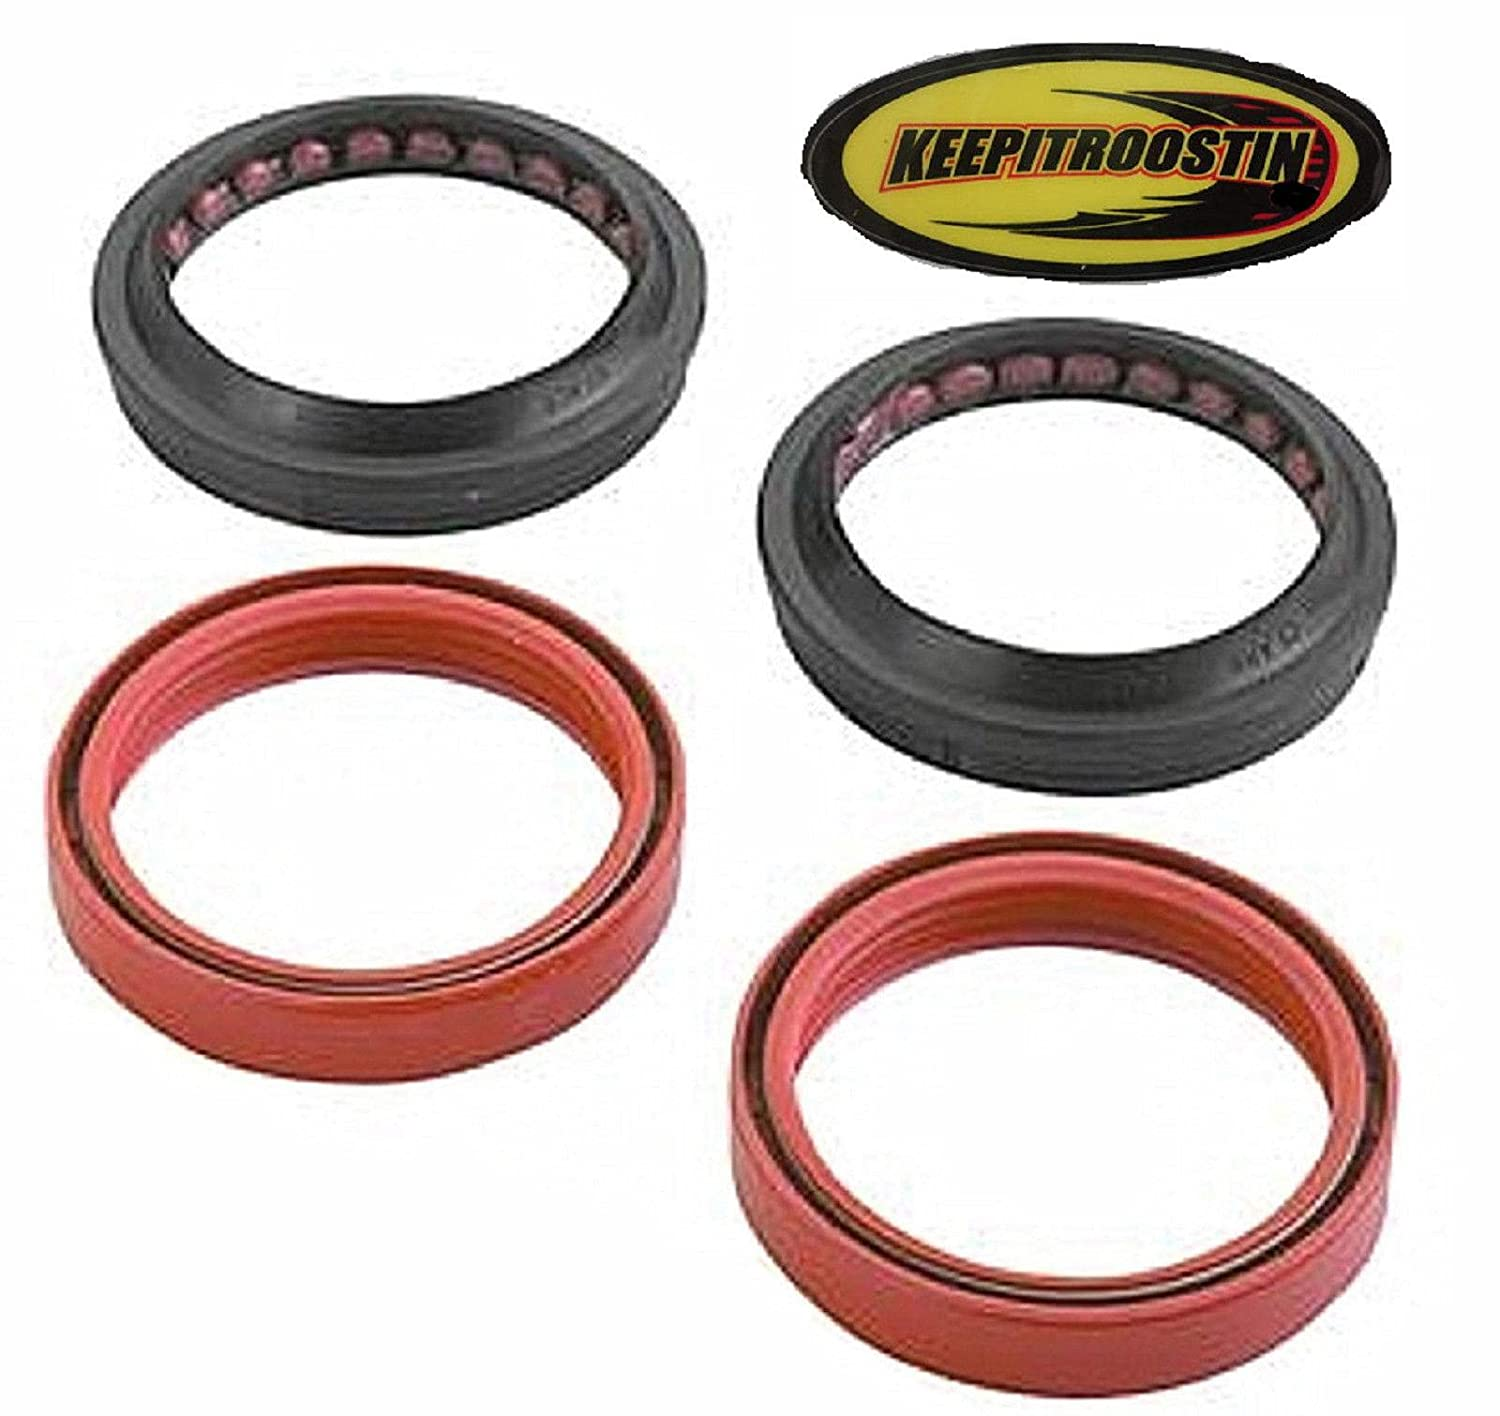 Fork and Dust Seals with Keepitroostin Sticker Fits Honda Cr250 2002-2007 All Balls 250cr56-142